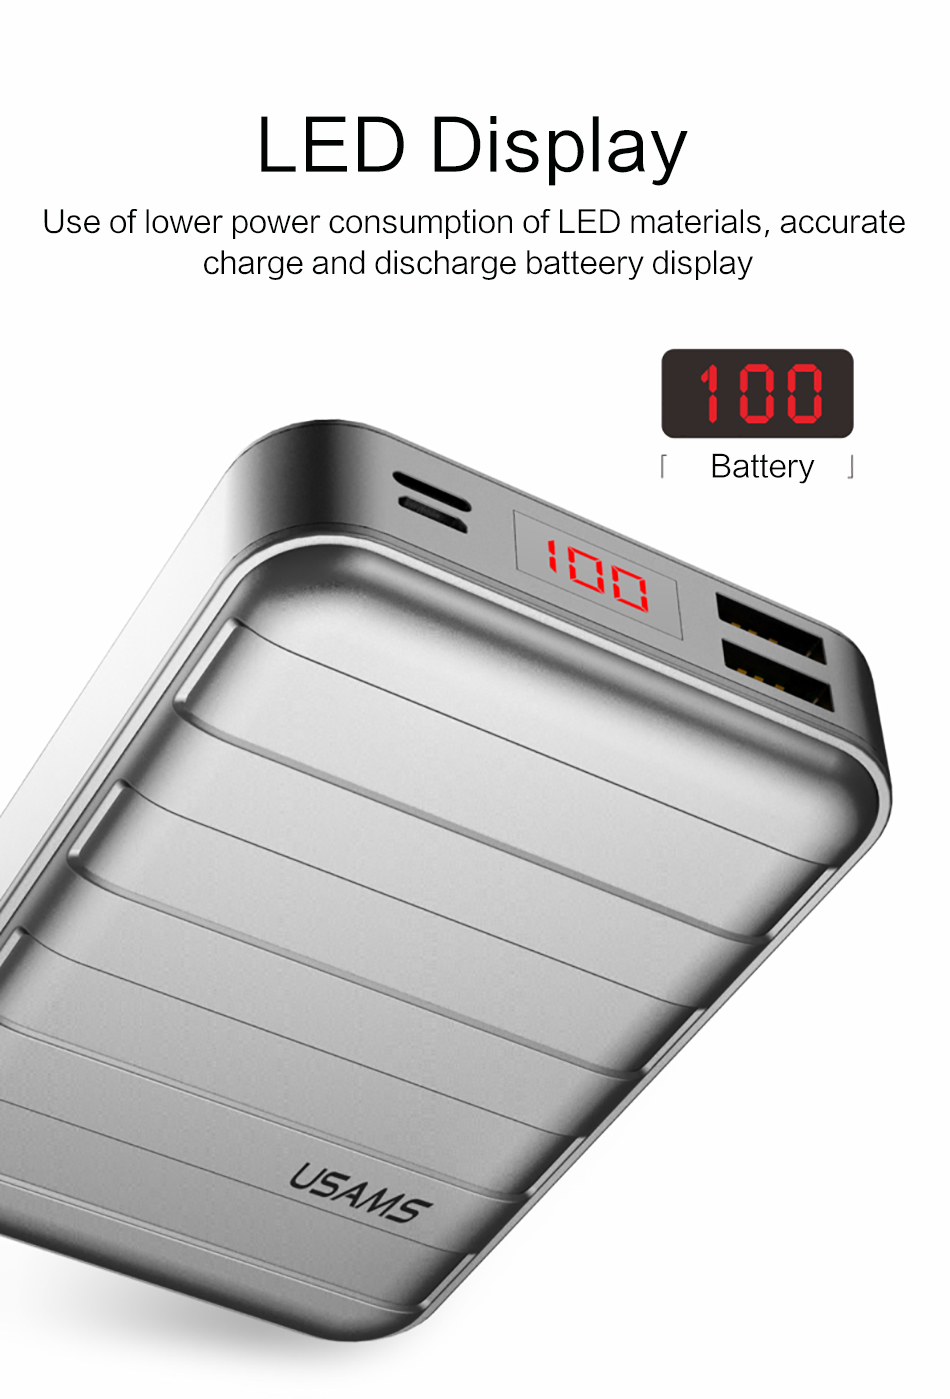 Power Bank 000mAh USAMS LCD Portable PowerBank External Battery Dual USB Charger For Xiaomi iPhone 7 6 6S 5 Mobile Phones Tab 11